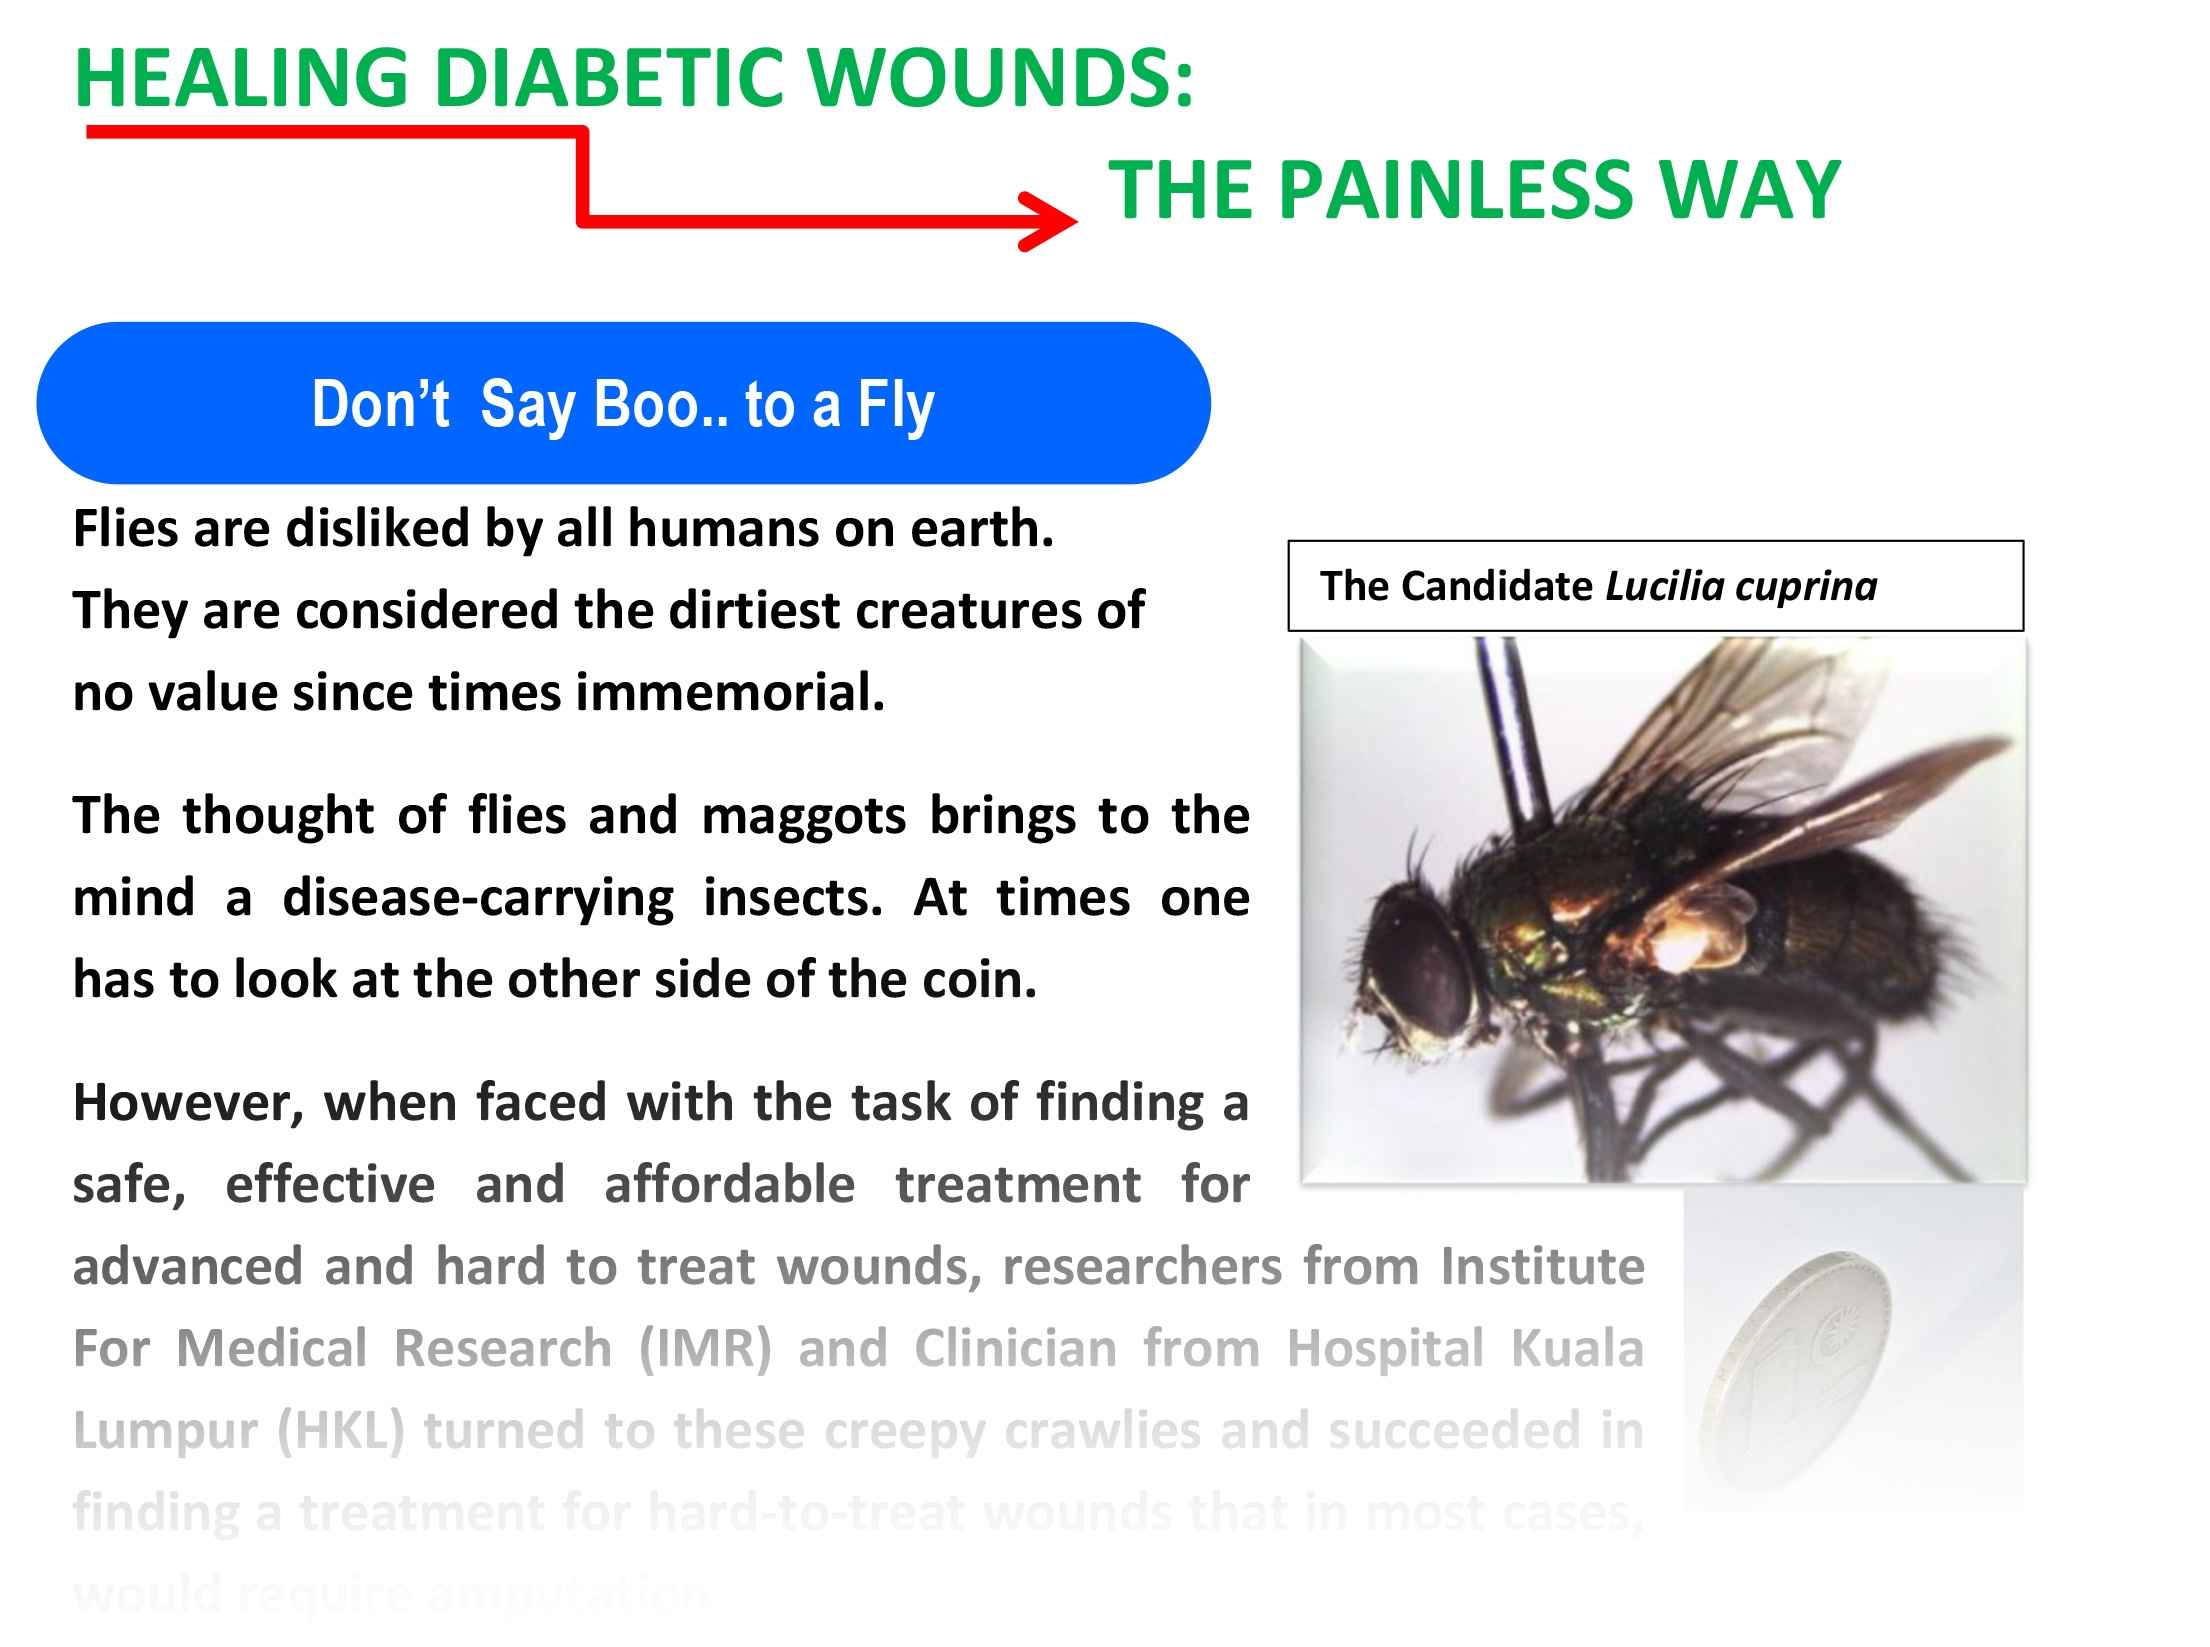 HEALING DIABETIC WOUNDS12